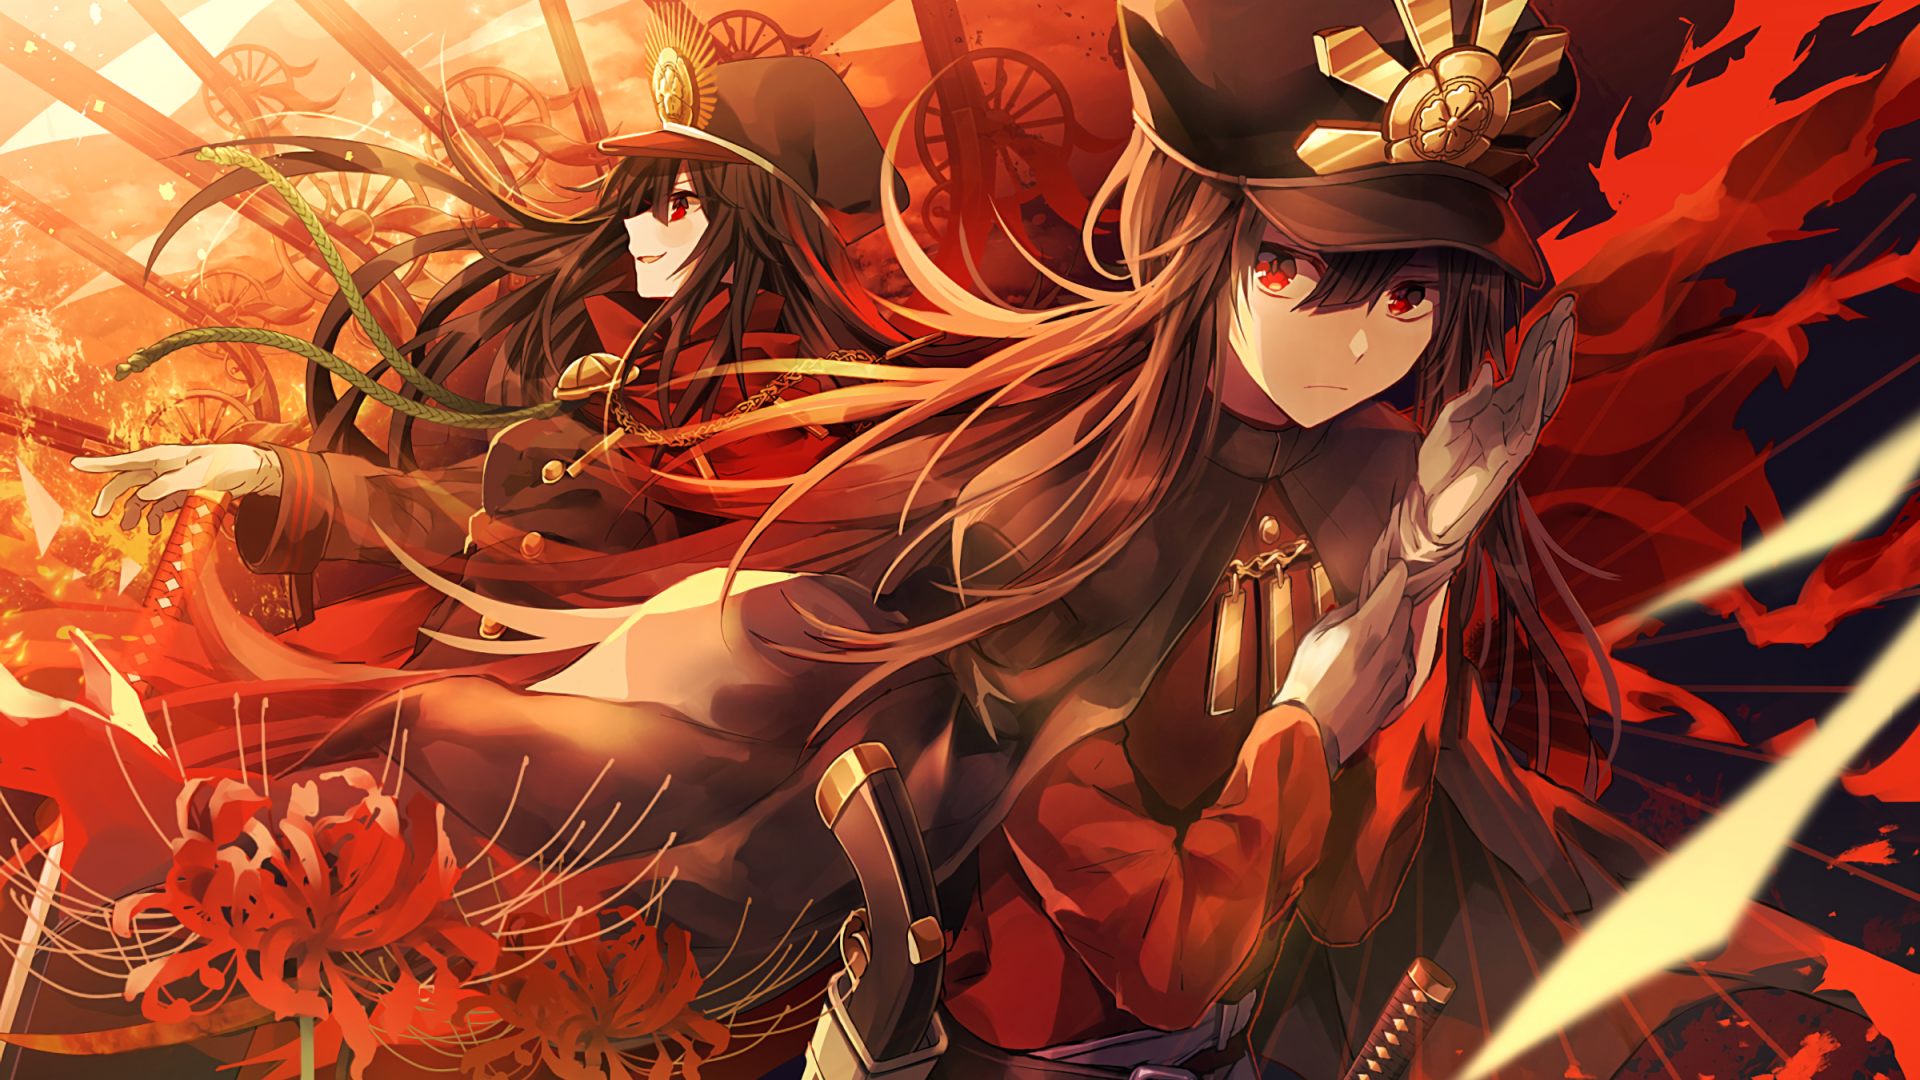 Fate Grand Order Hd Wallpaper From Gallsource Com 織田 女侍